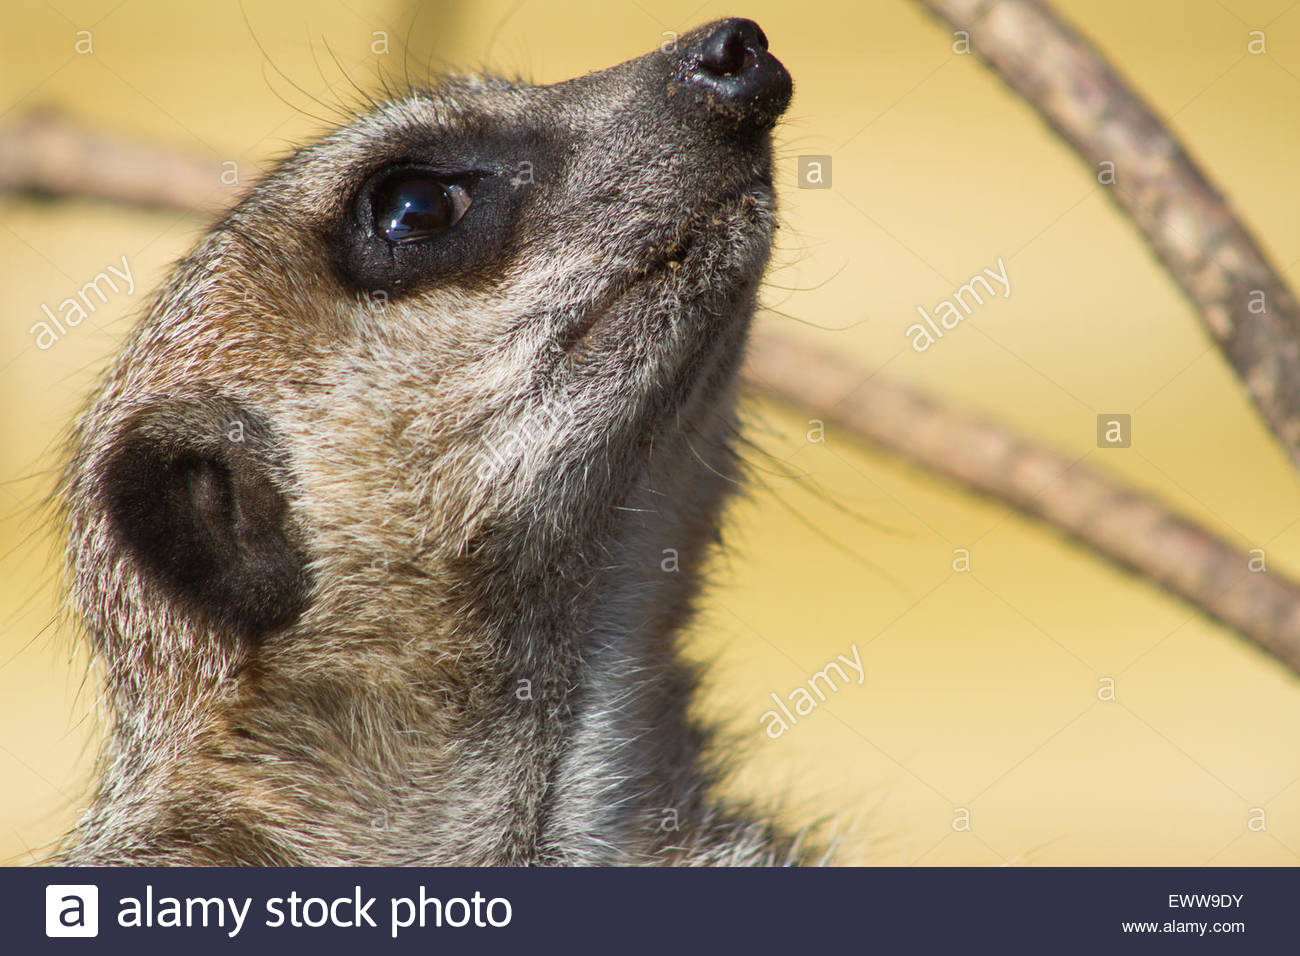 A close up of a Meerkat looking towards the sky in the Jungle Zoo, Cleethorpes, East of England - Stock Image